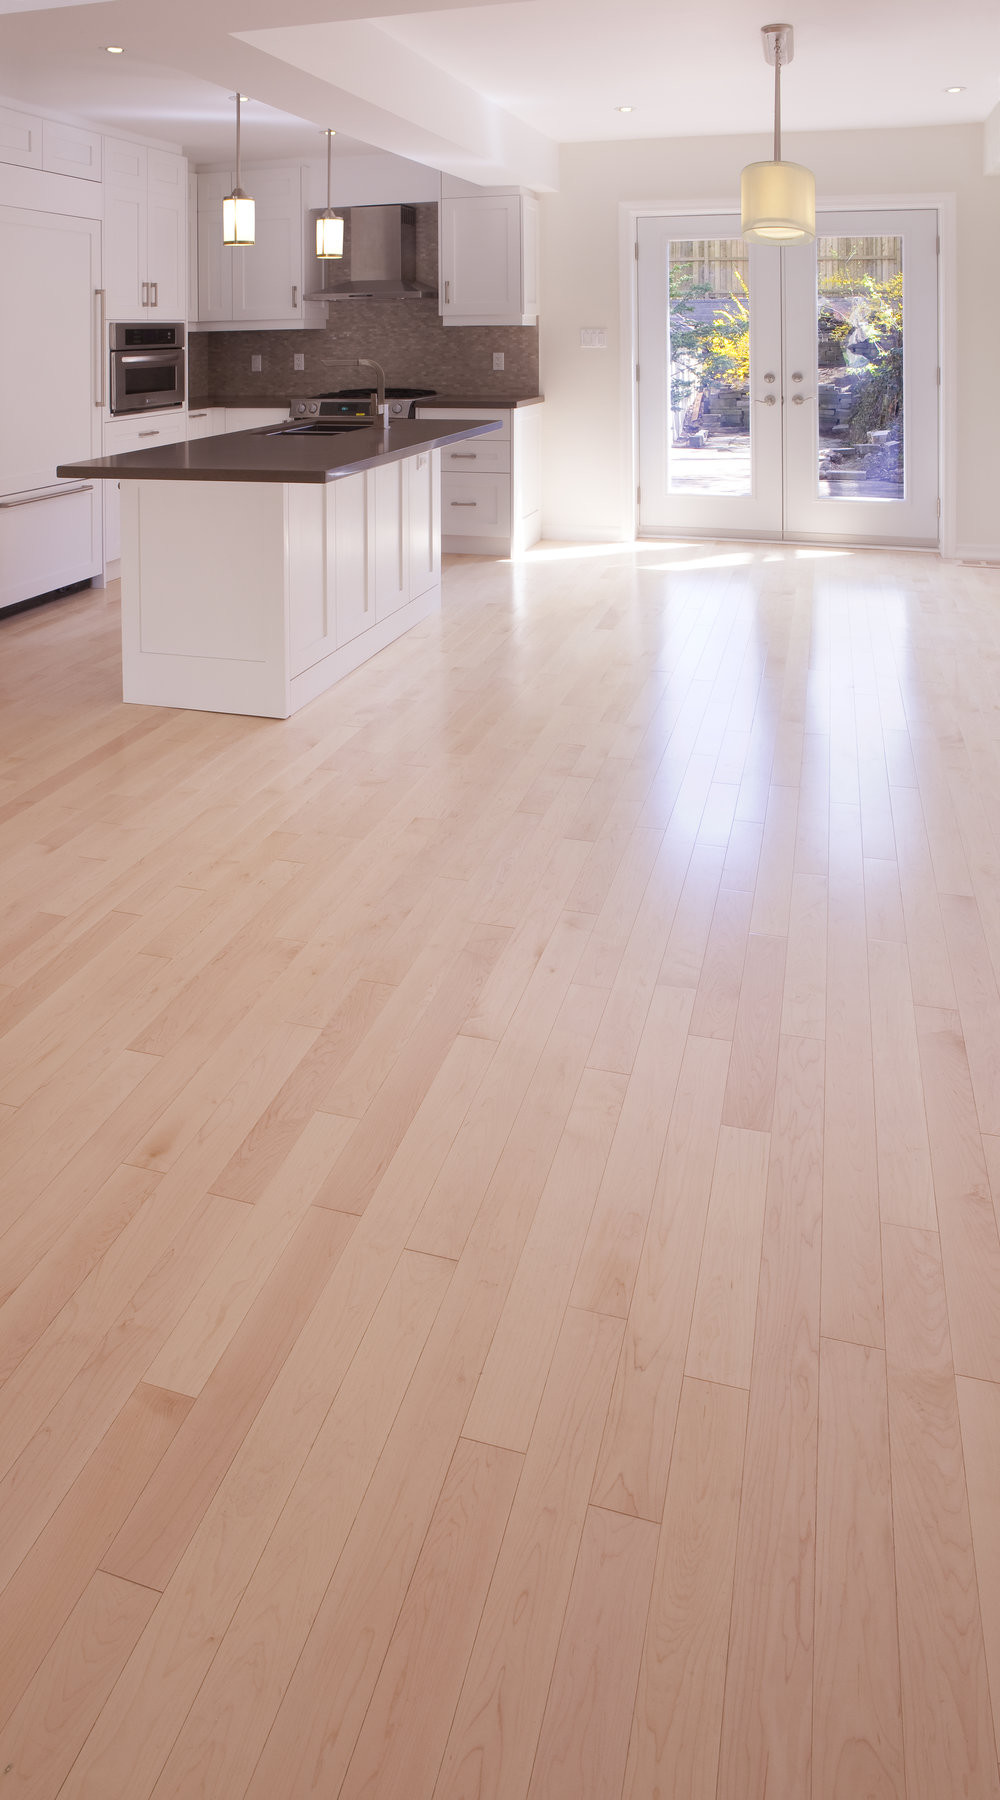 total hardwood flooring oakville of boardwalk hardwood floors throughout vintage smooth maple natural